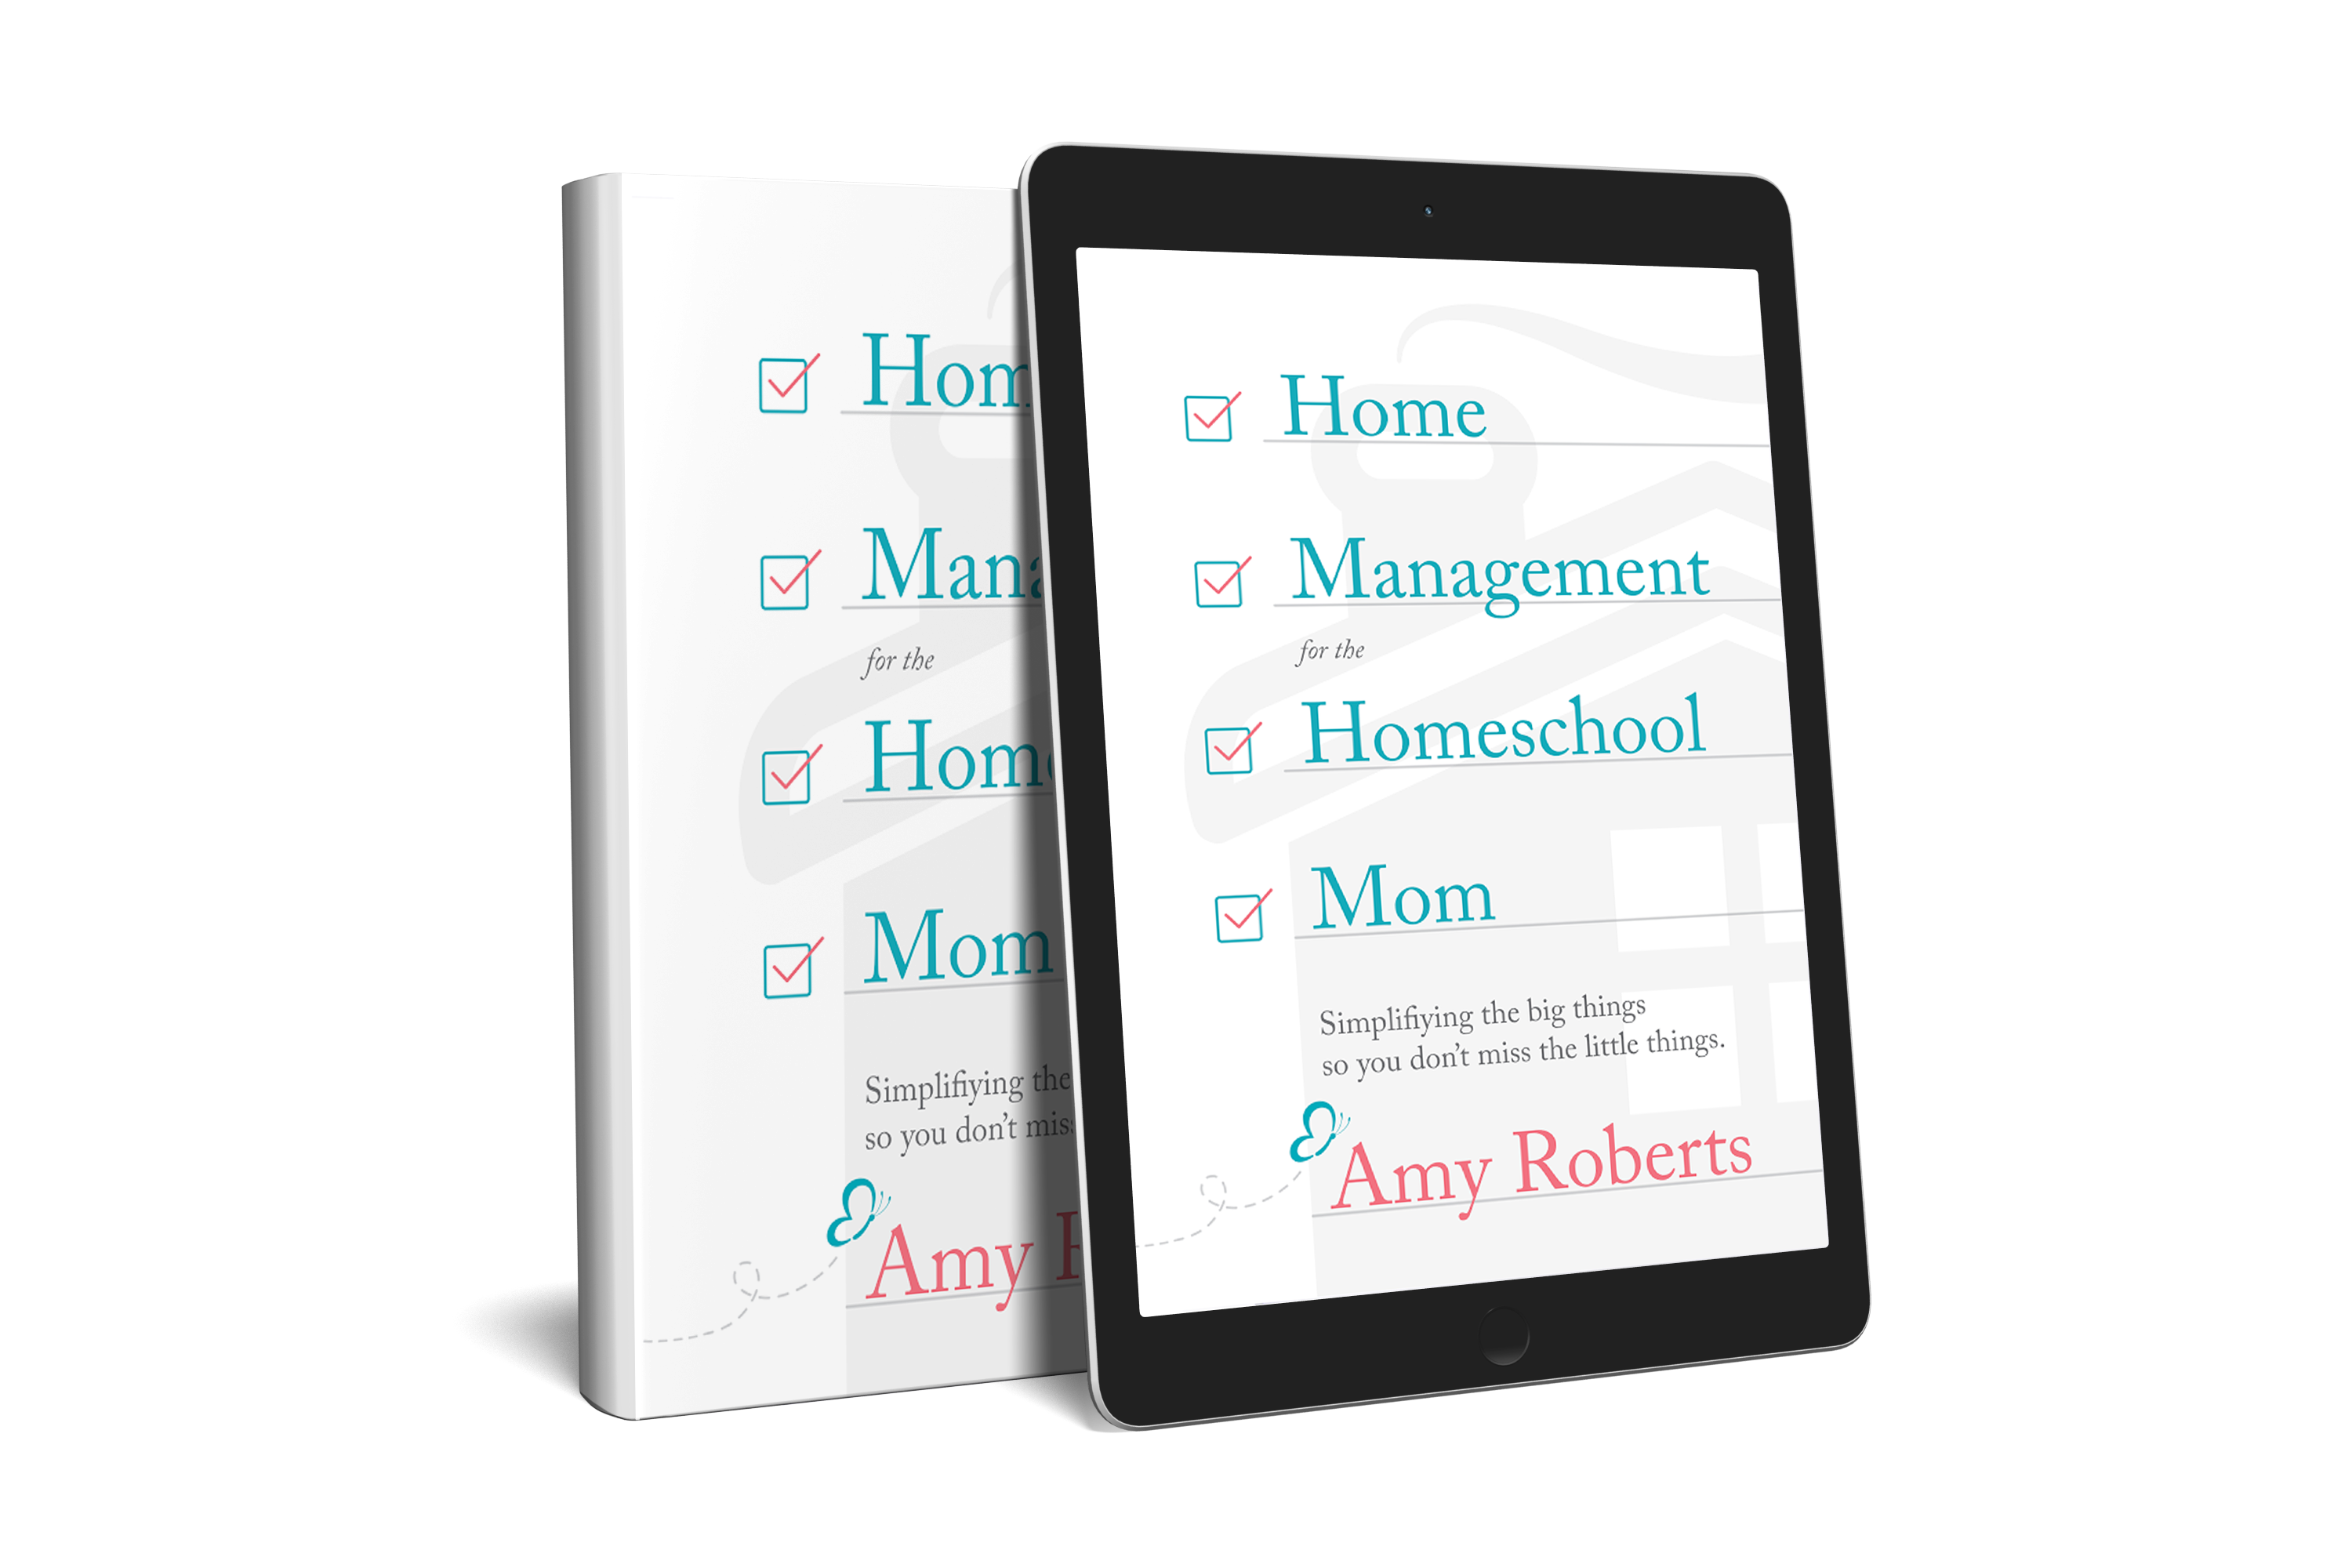 homeschool management for the homeschool mom with Amy Roberts